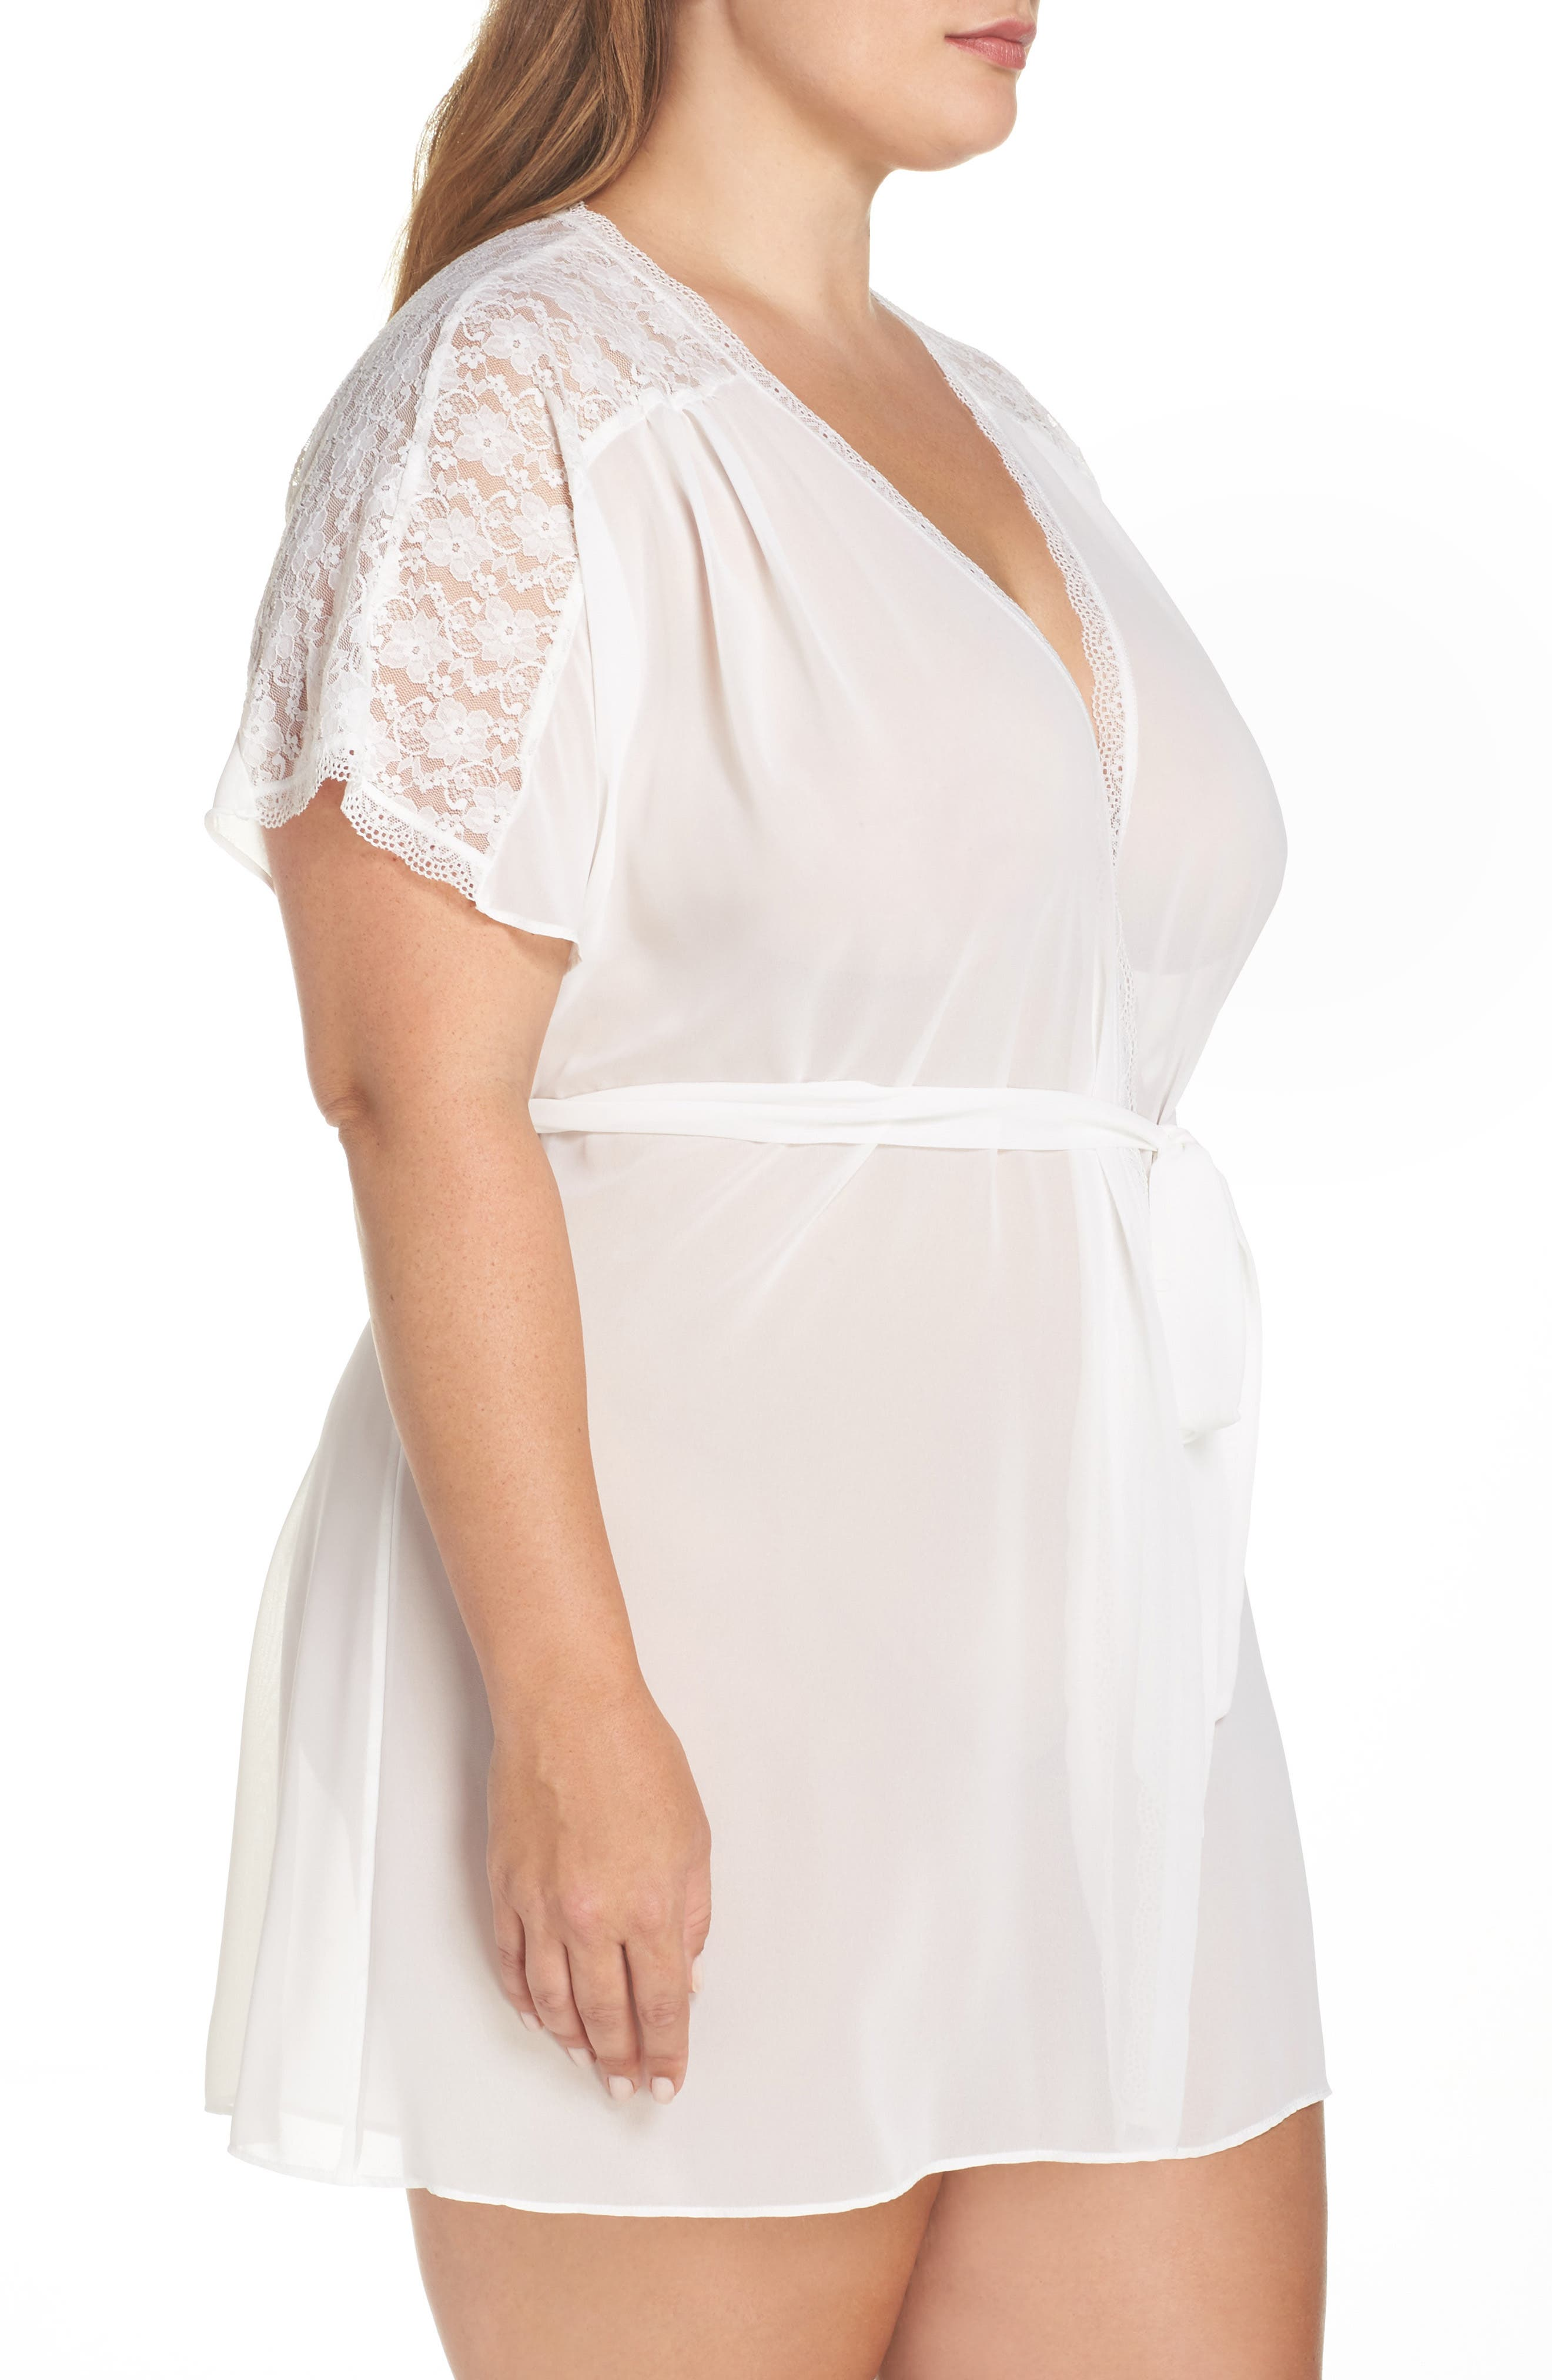 Alternate Image 3  - In Bloom by Jonquil Chiffon Robe (Plus Size)